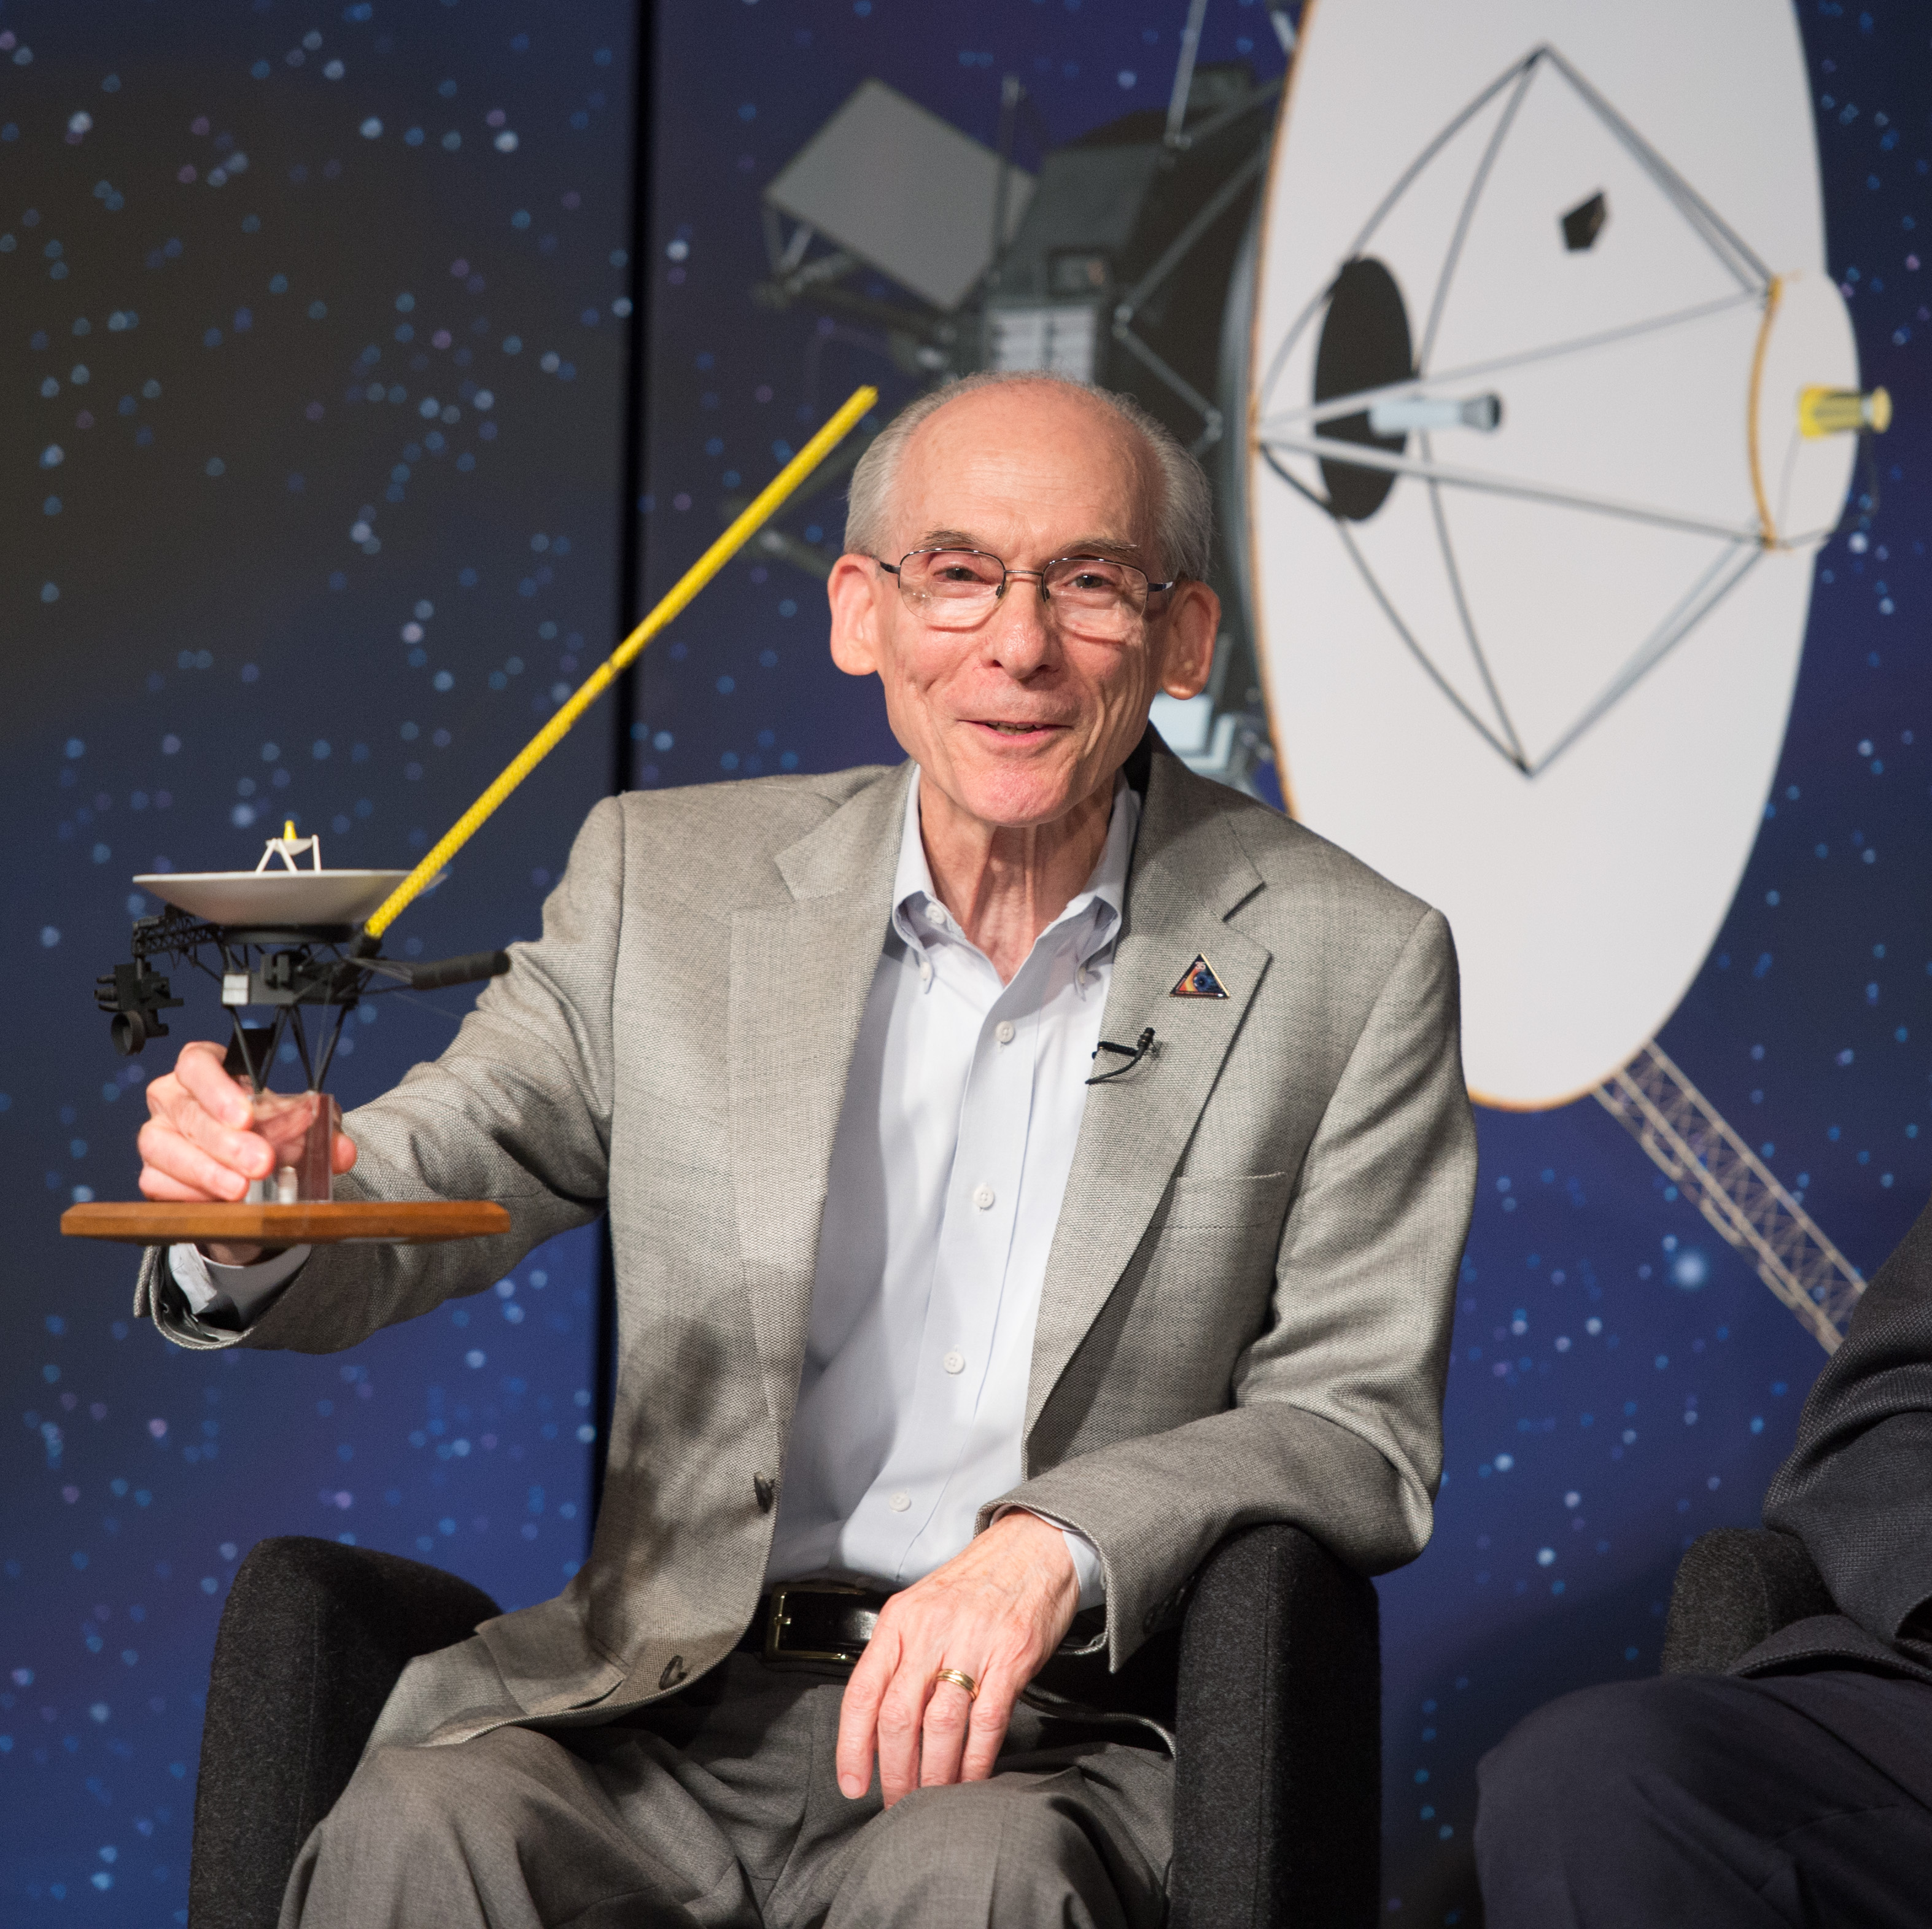 Sept. 12, 2013: Ed Stone Holds Model of Spacecraft at Voyager 1 Conference